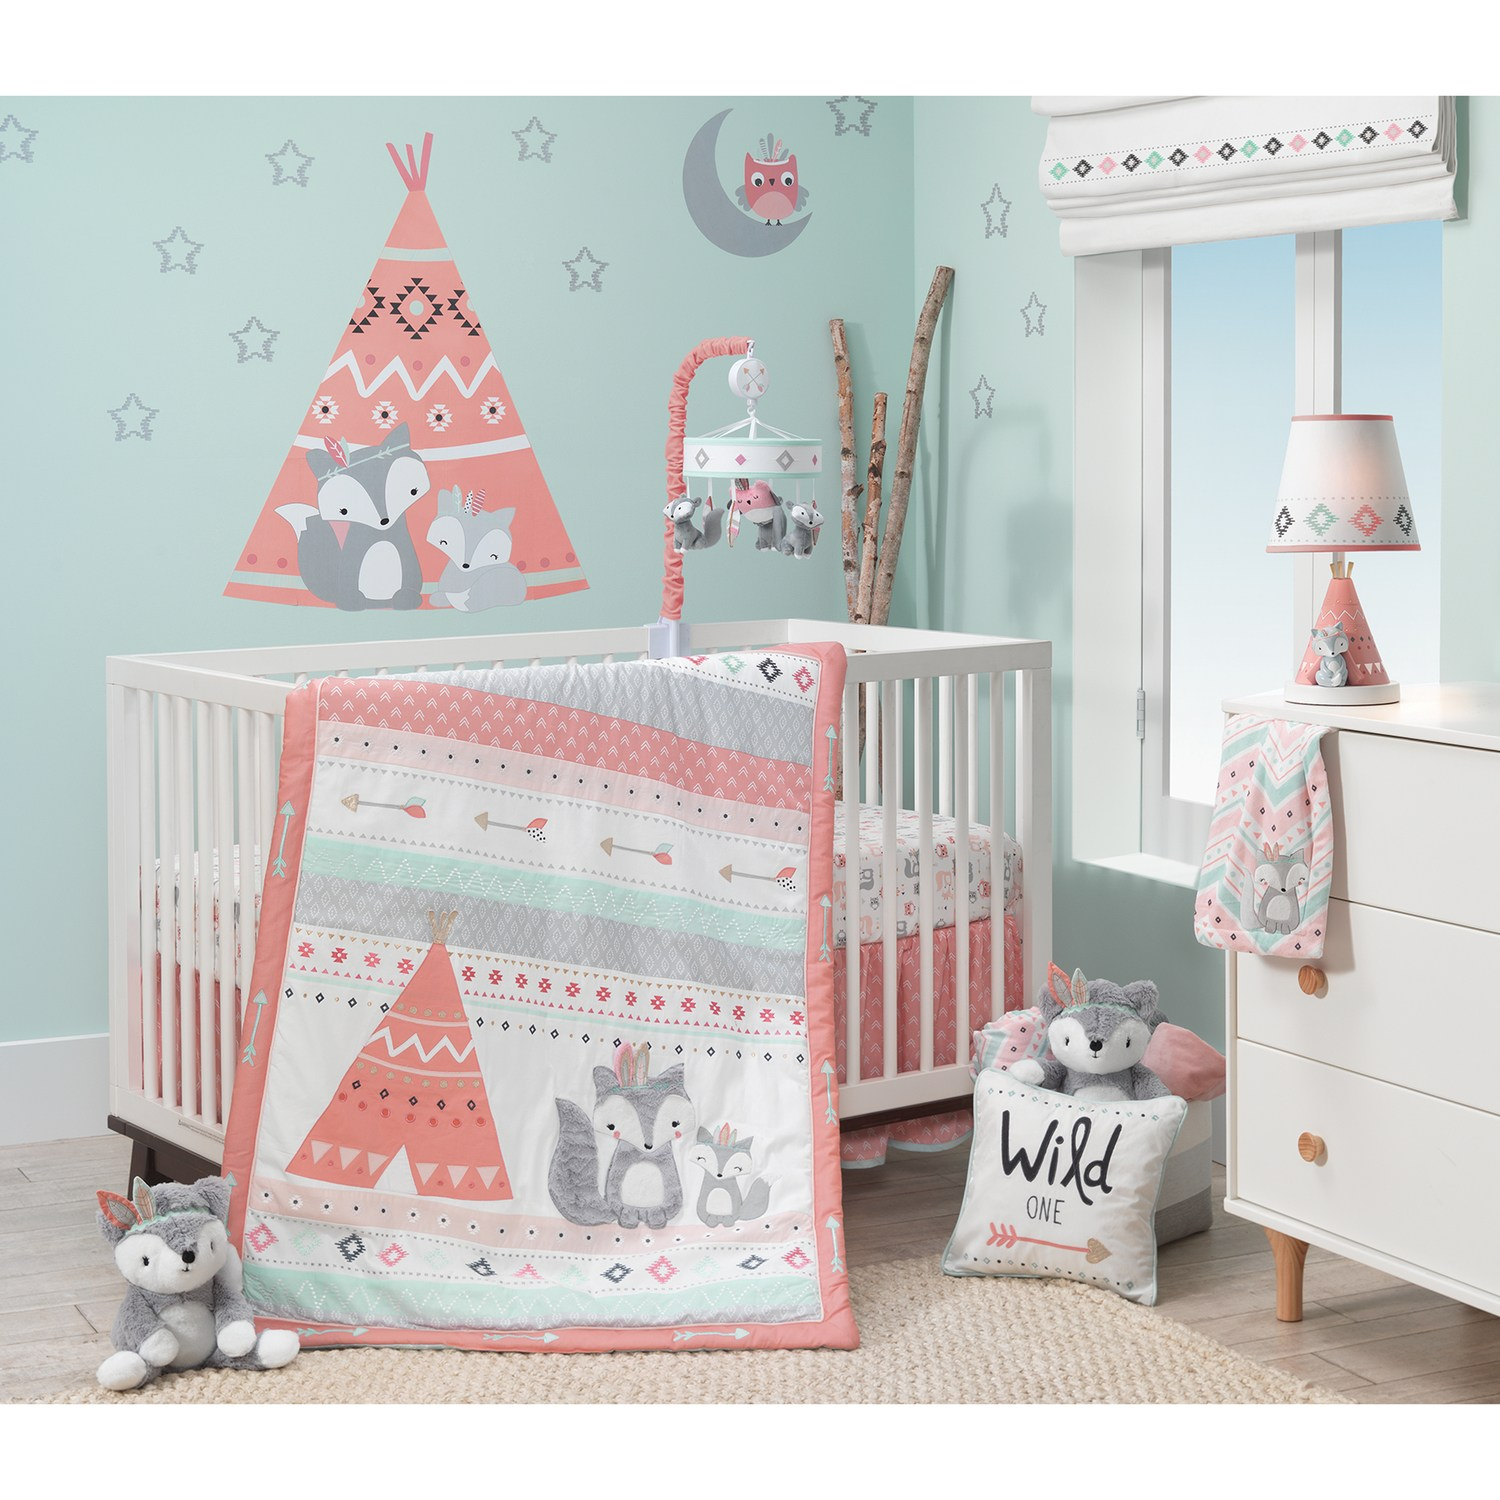 Baby bedding sets little ghost fox, tipi & arrows crib bedding EDJUCPS